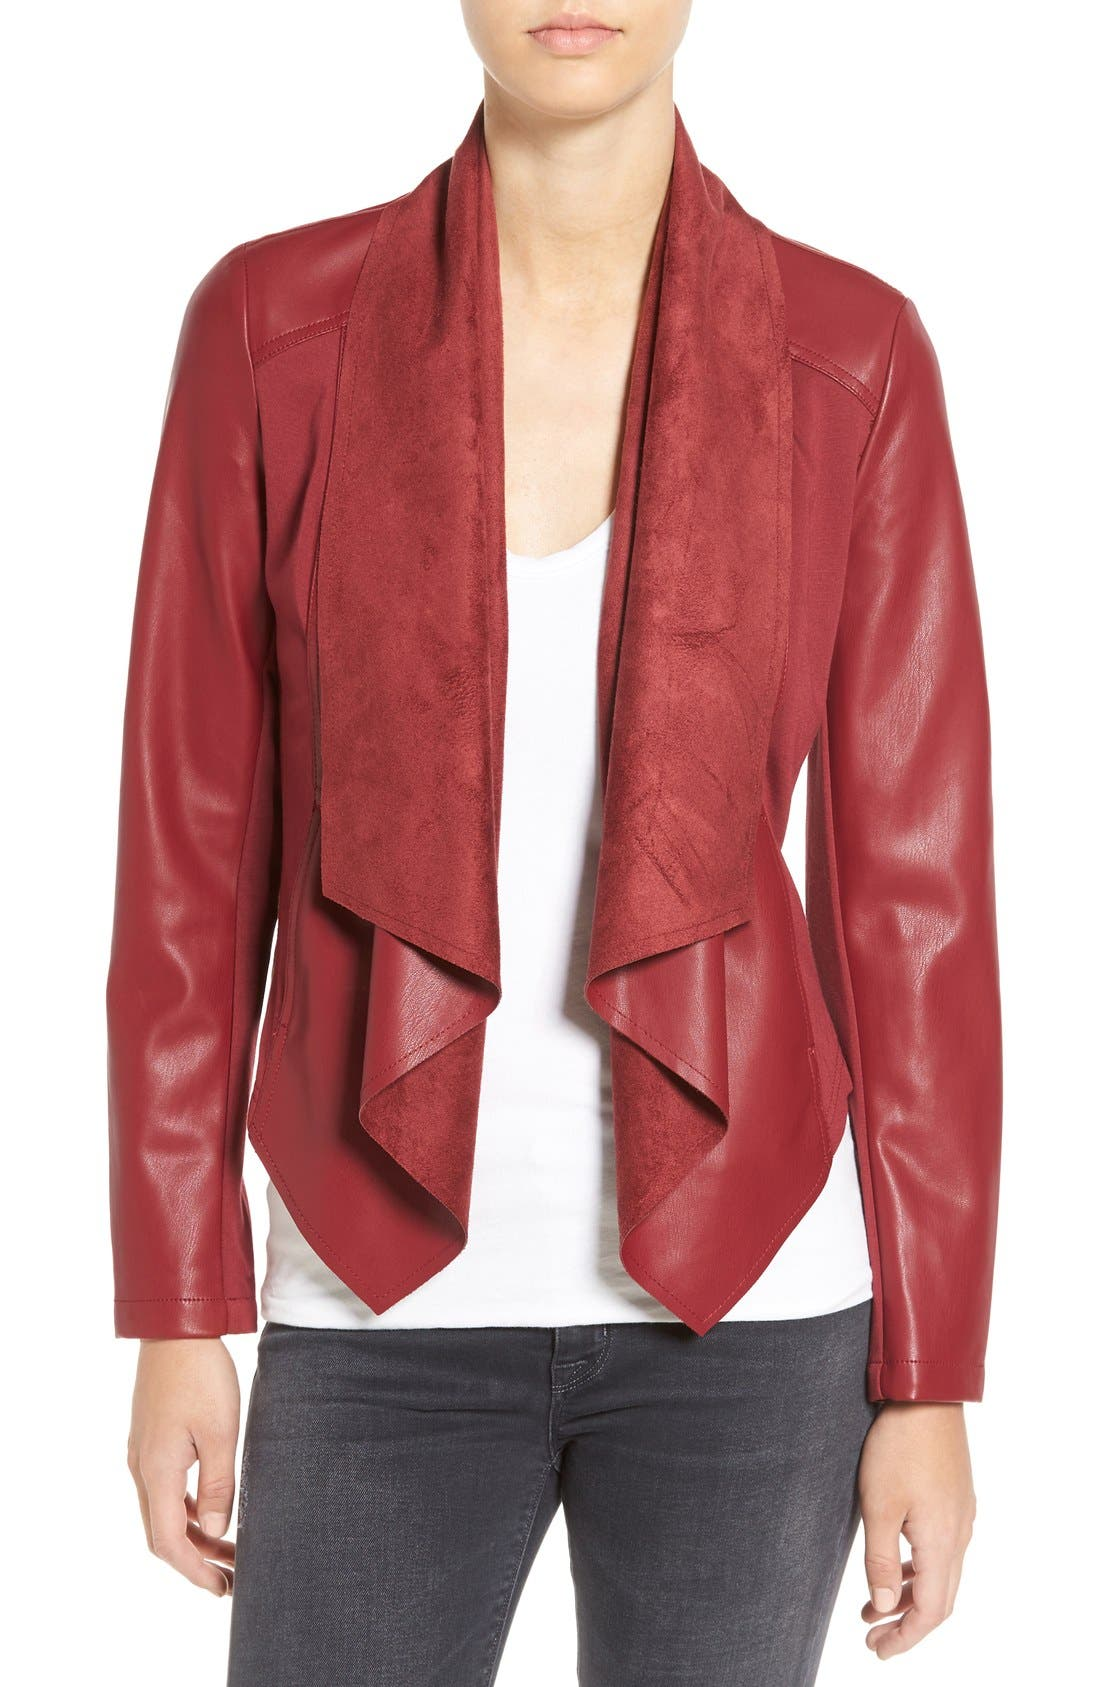 Alternate Image 1 Selected - KUT from the Kloth 'Ana' Faux Leather Drape Front Jacket (Regular & Petite)